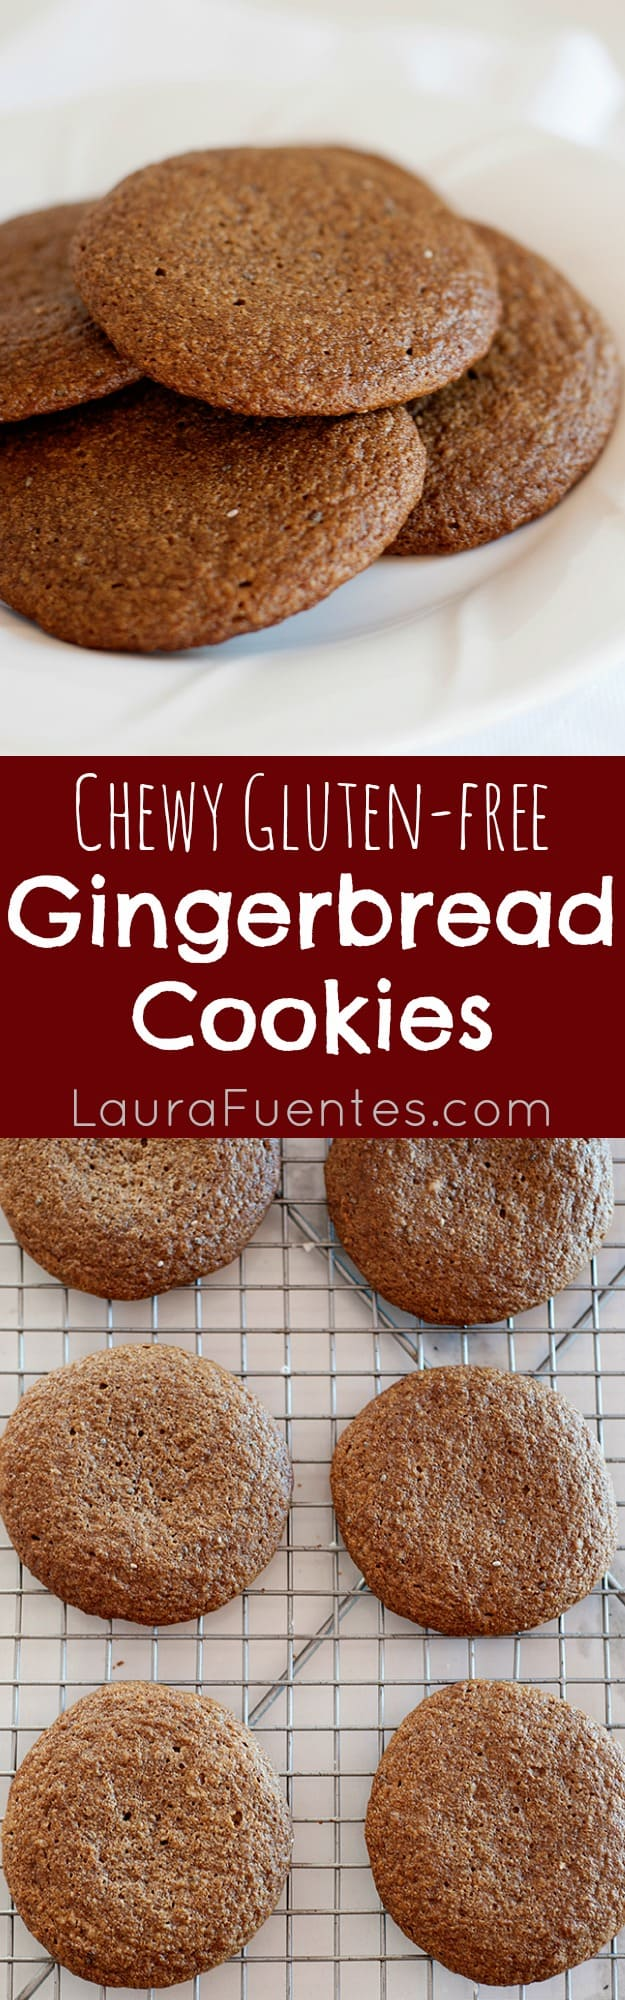 High Protein Chew Gingerbread Cookies: These cookies will get you through your busiest shopping days and your kids will love them too, plus they are gluten-free!